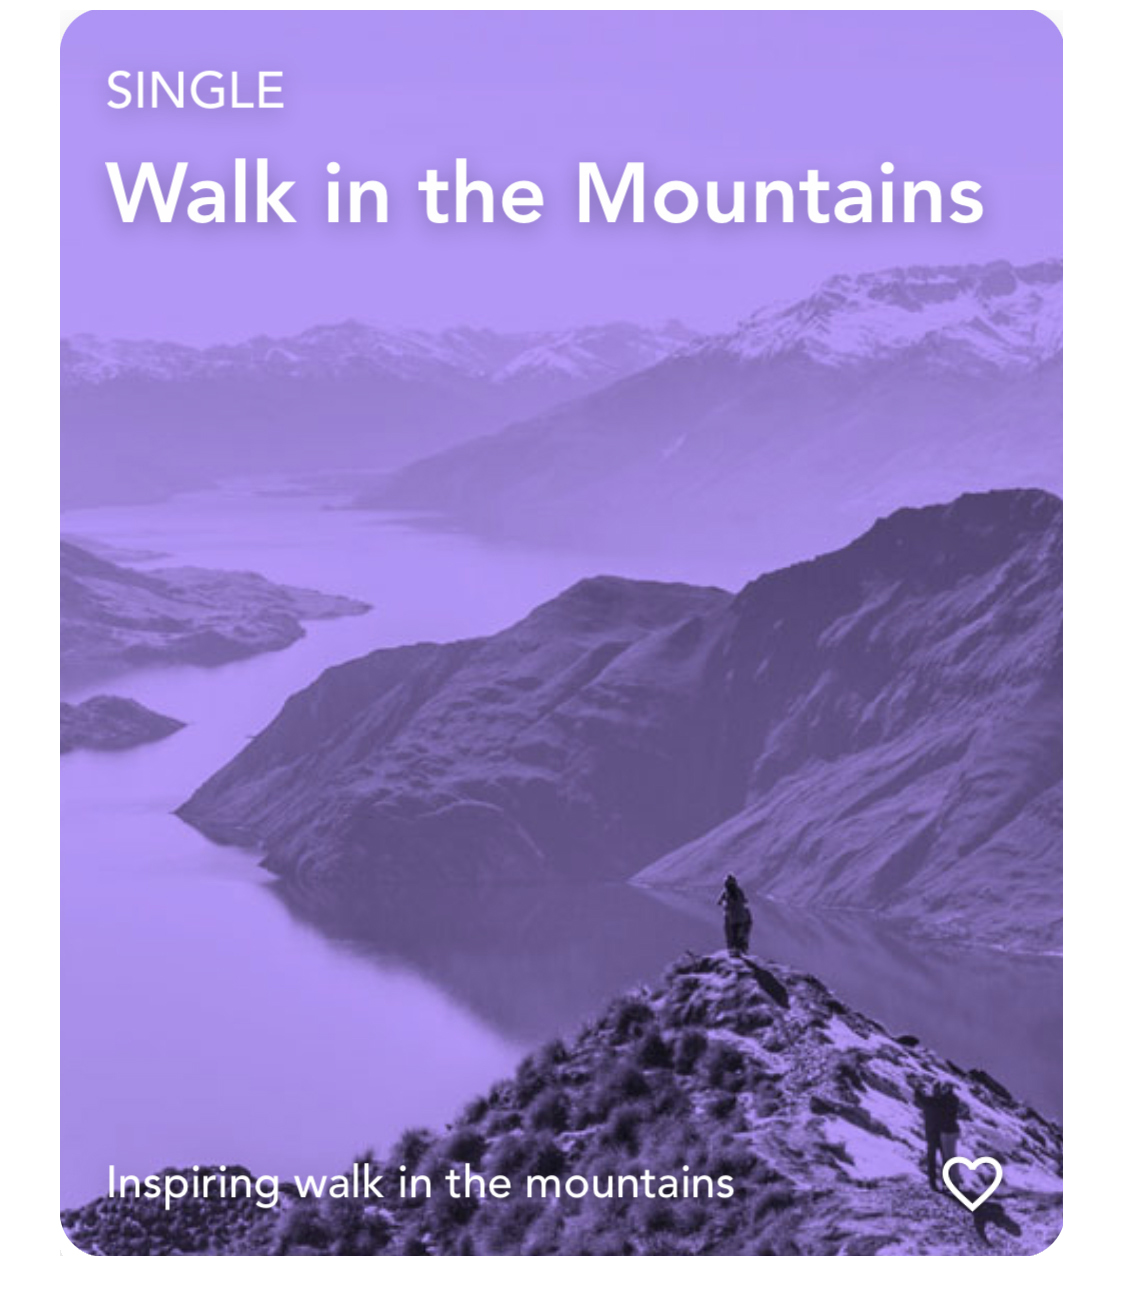 Walk in the Mountains Single Visualization